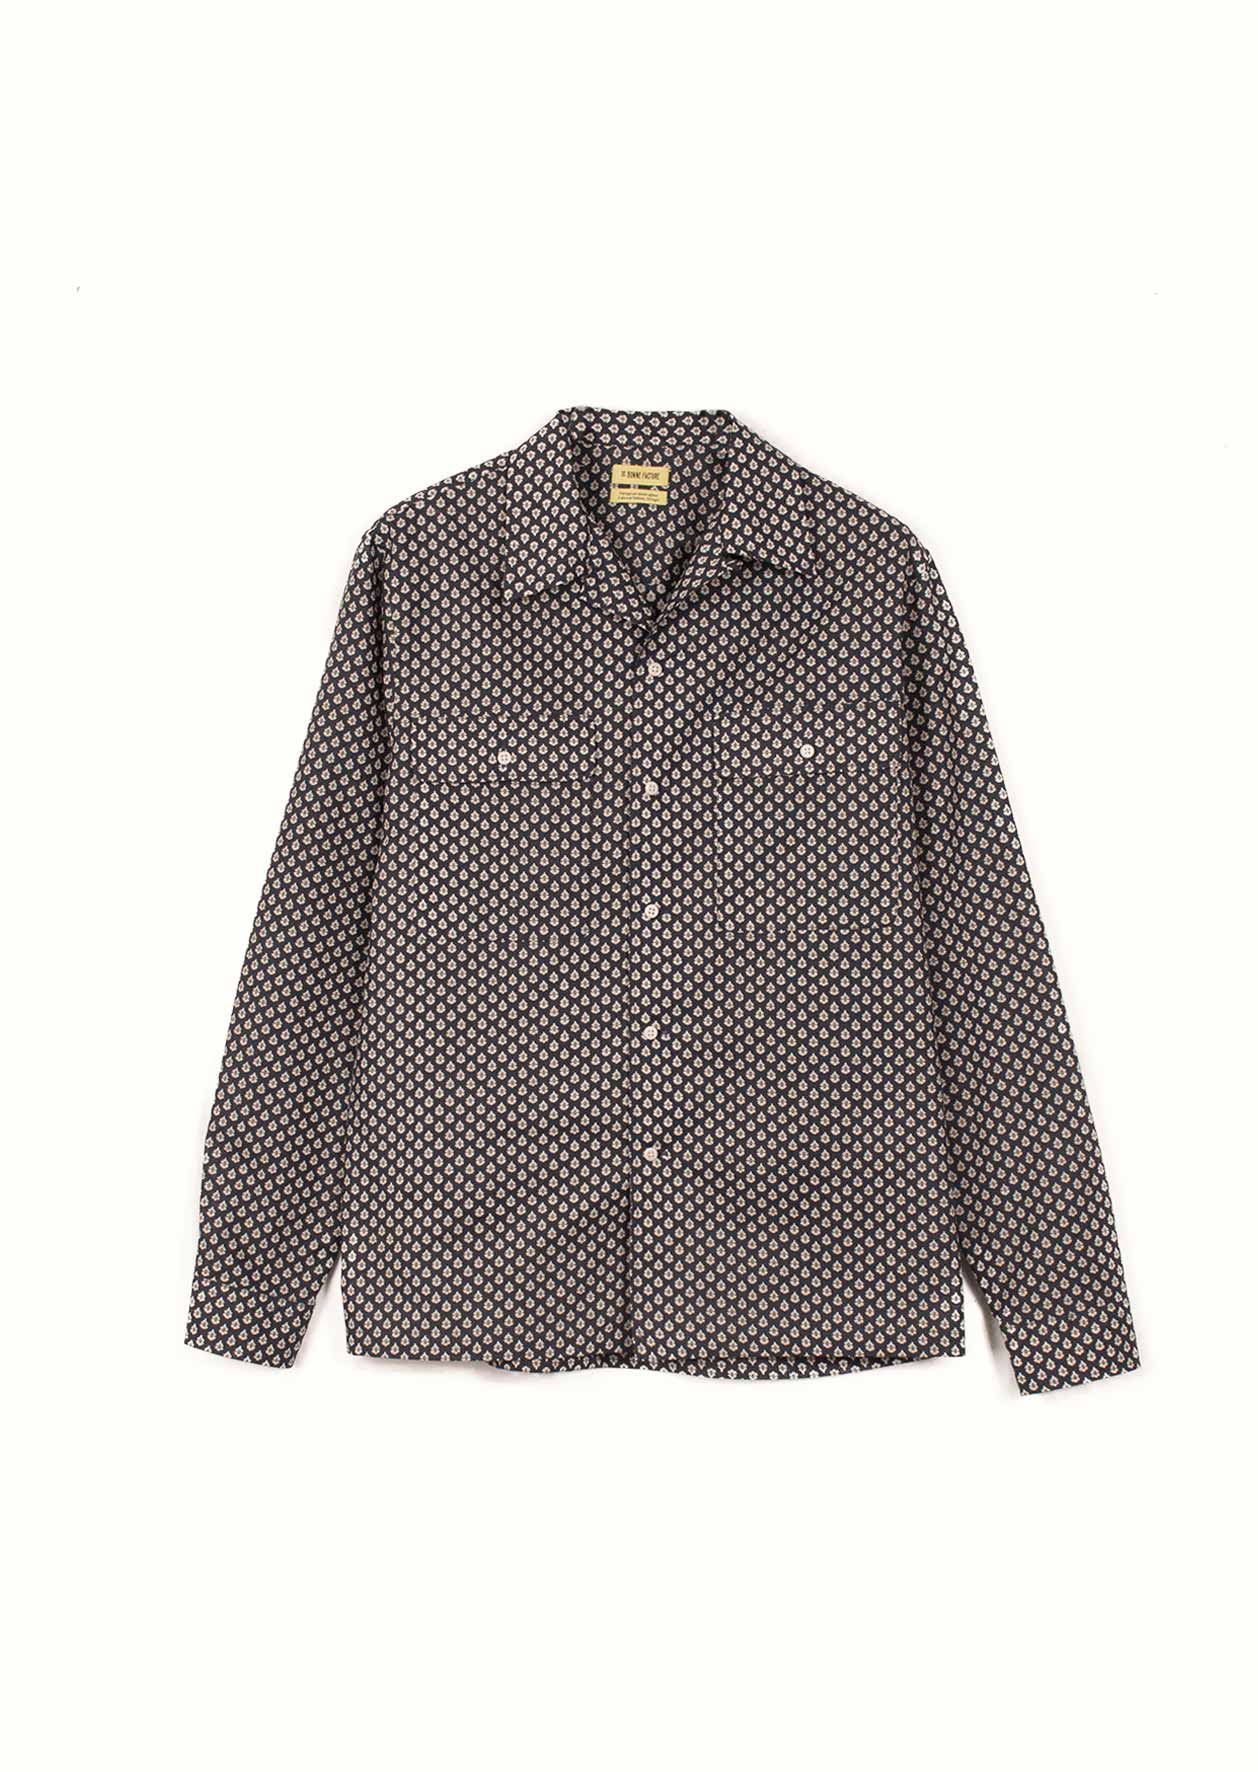 De Bonne Facture - Camp collar long sleeve shirt - Provencal print cotton voile - Navy